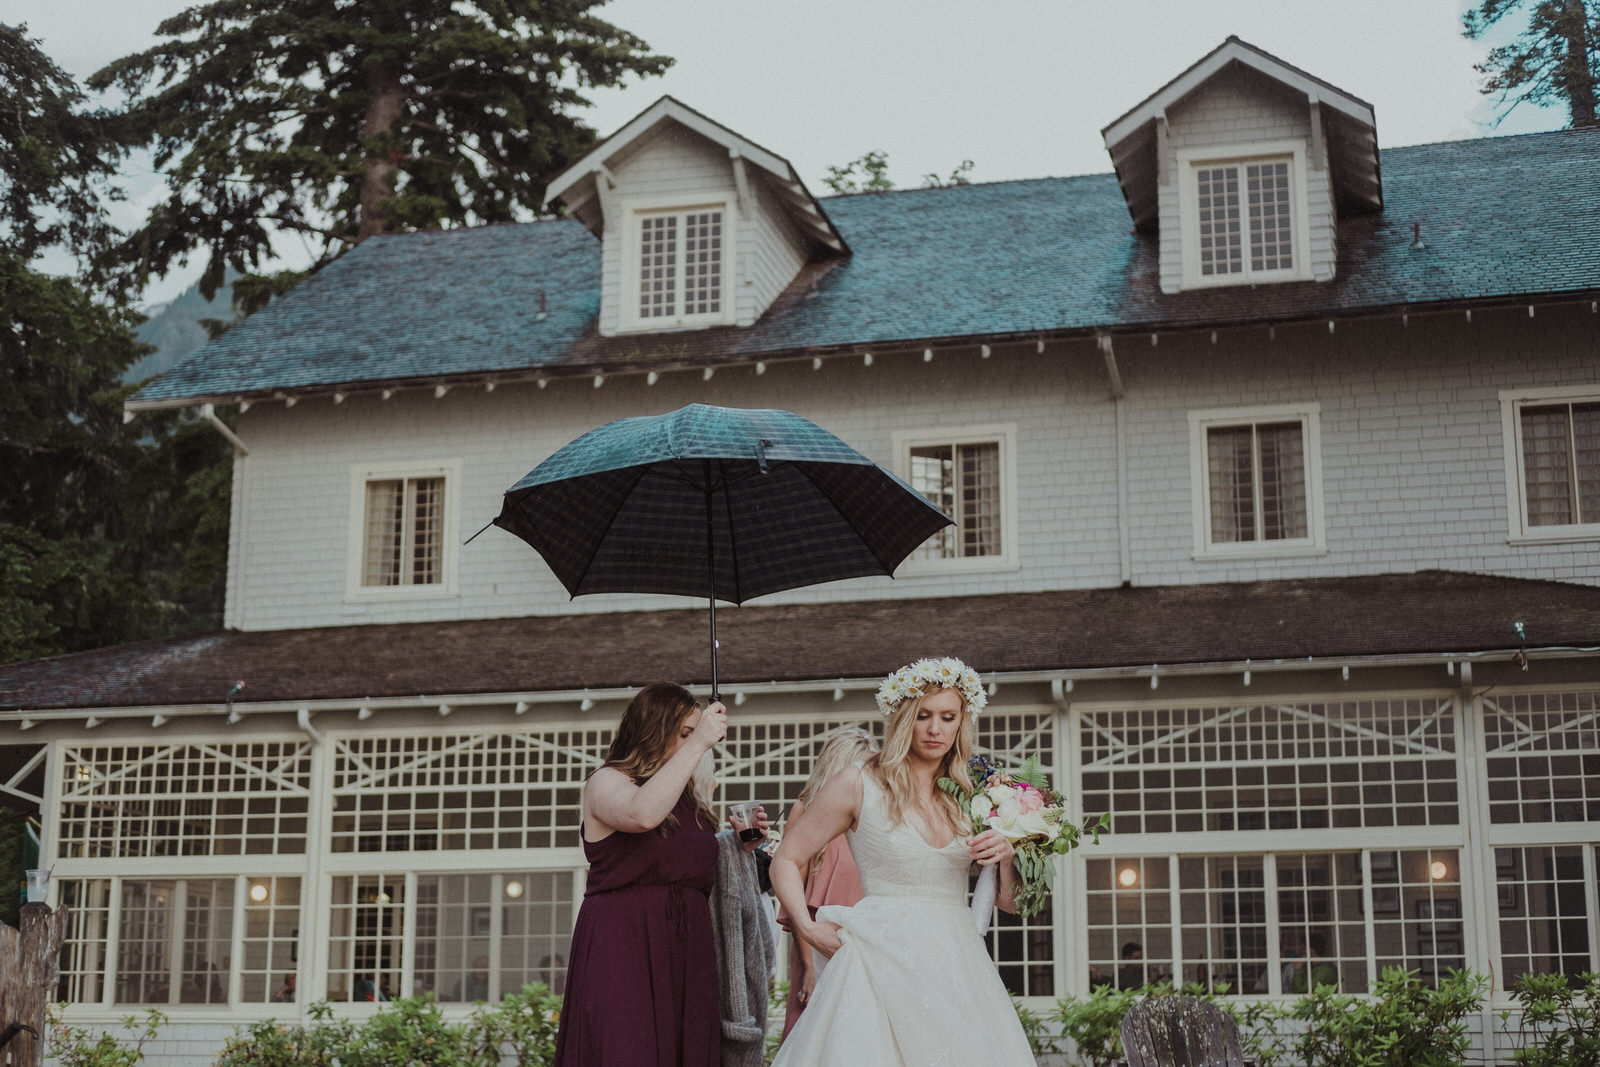 wedding at the lake crescent lodge